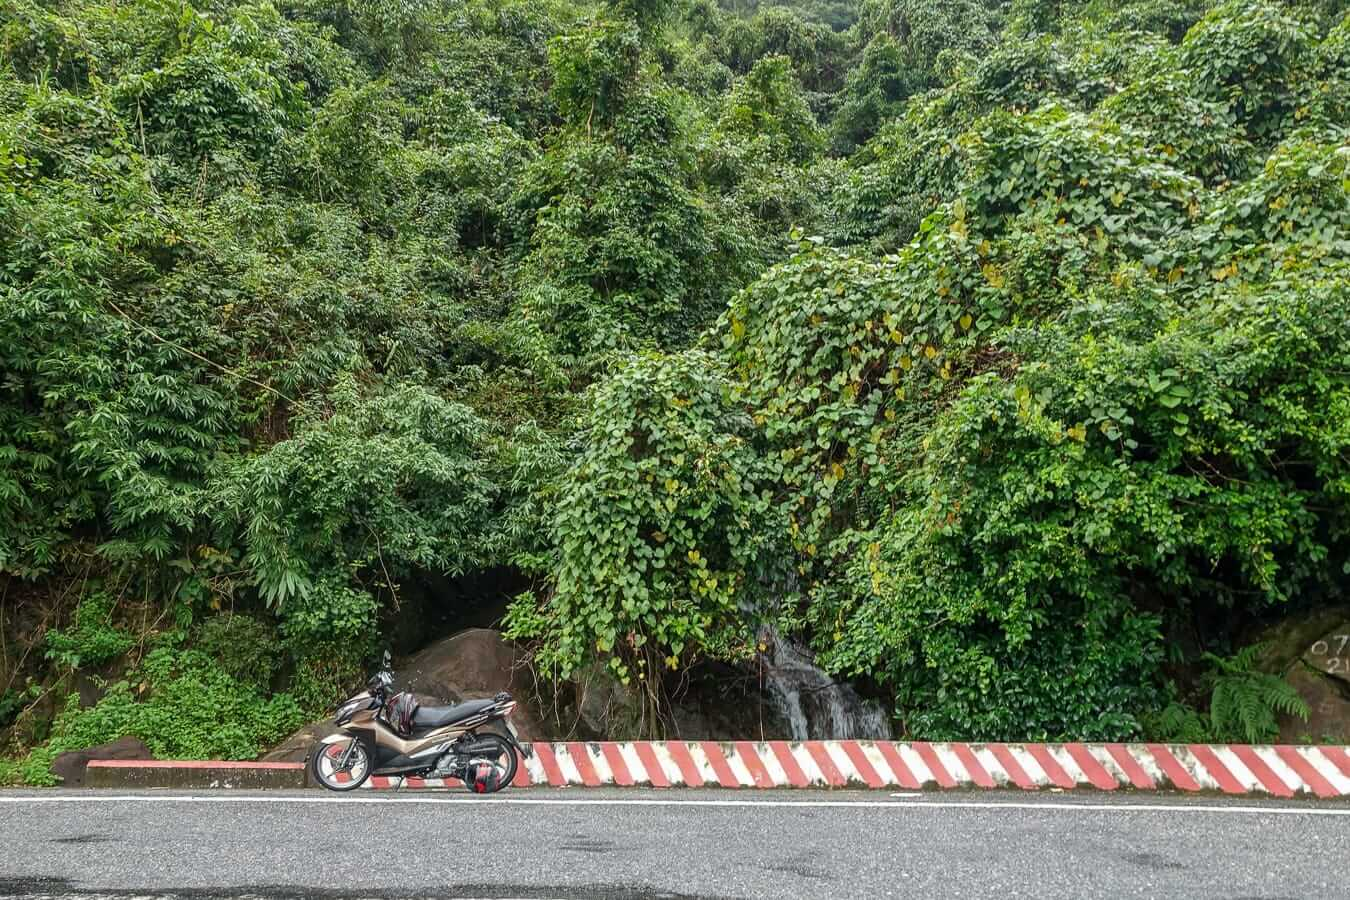 Safety rails of the Hai Van Pass: Hue to Hoi An by Motorbike